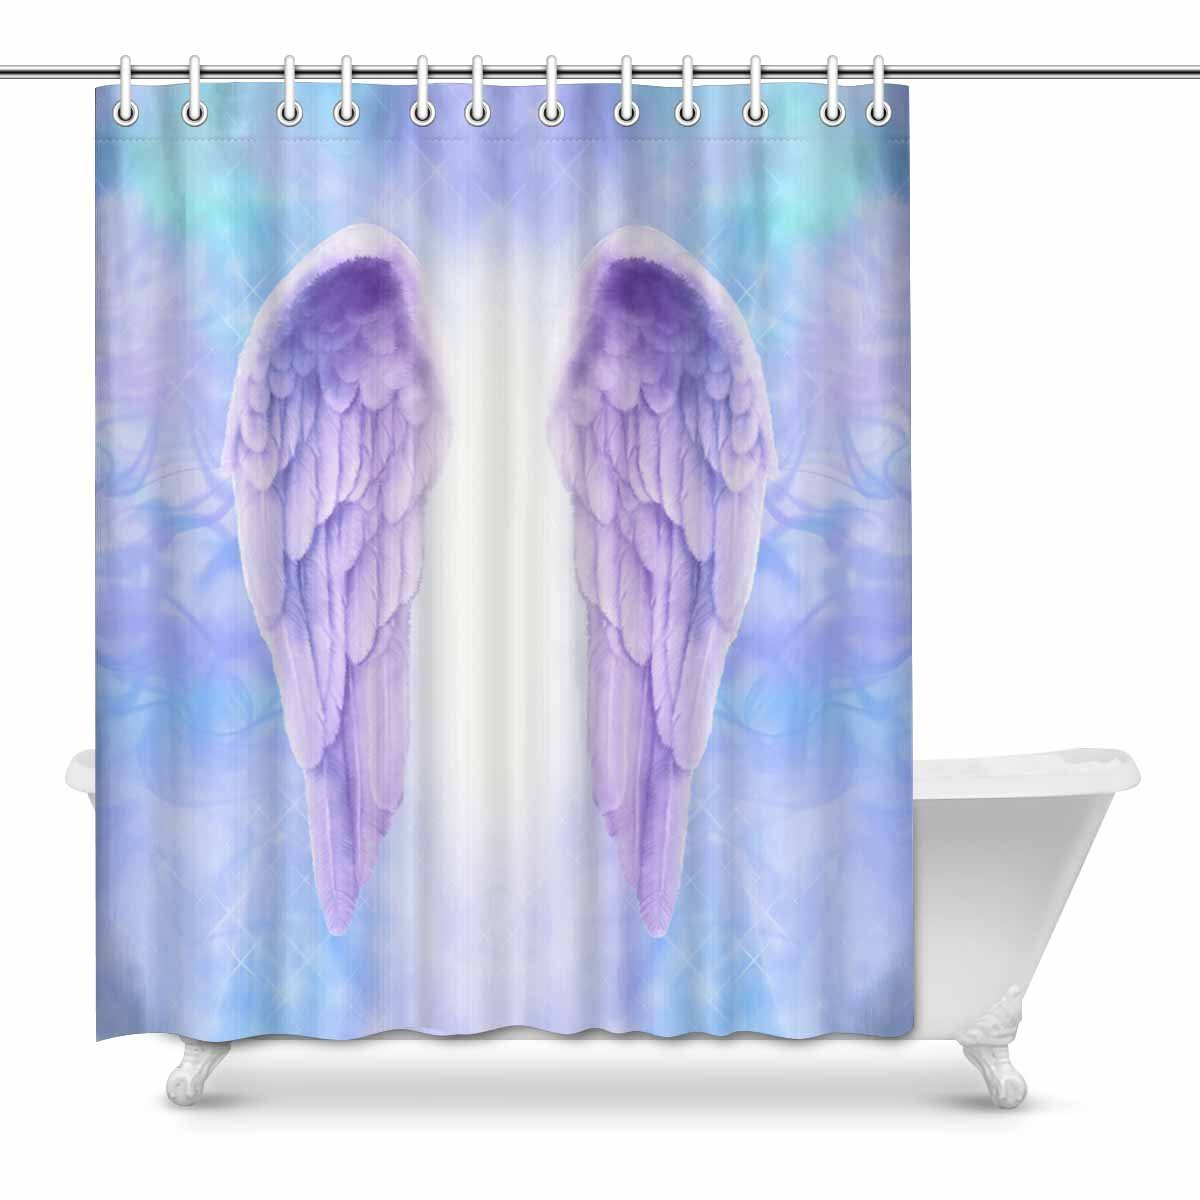 Home Decorations Contemporary X-Ray Flowers Shower Curtain Lavender,Small Stall Size 36 x 72 Inch Floral